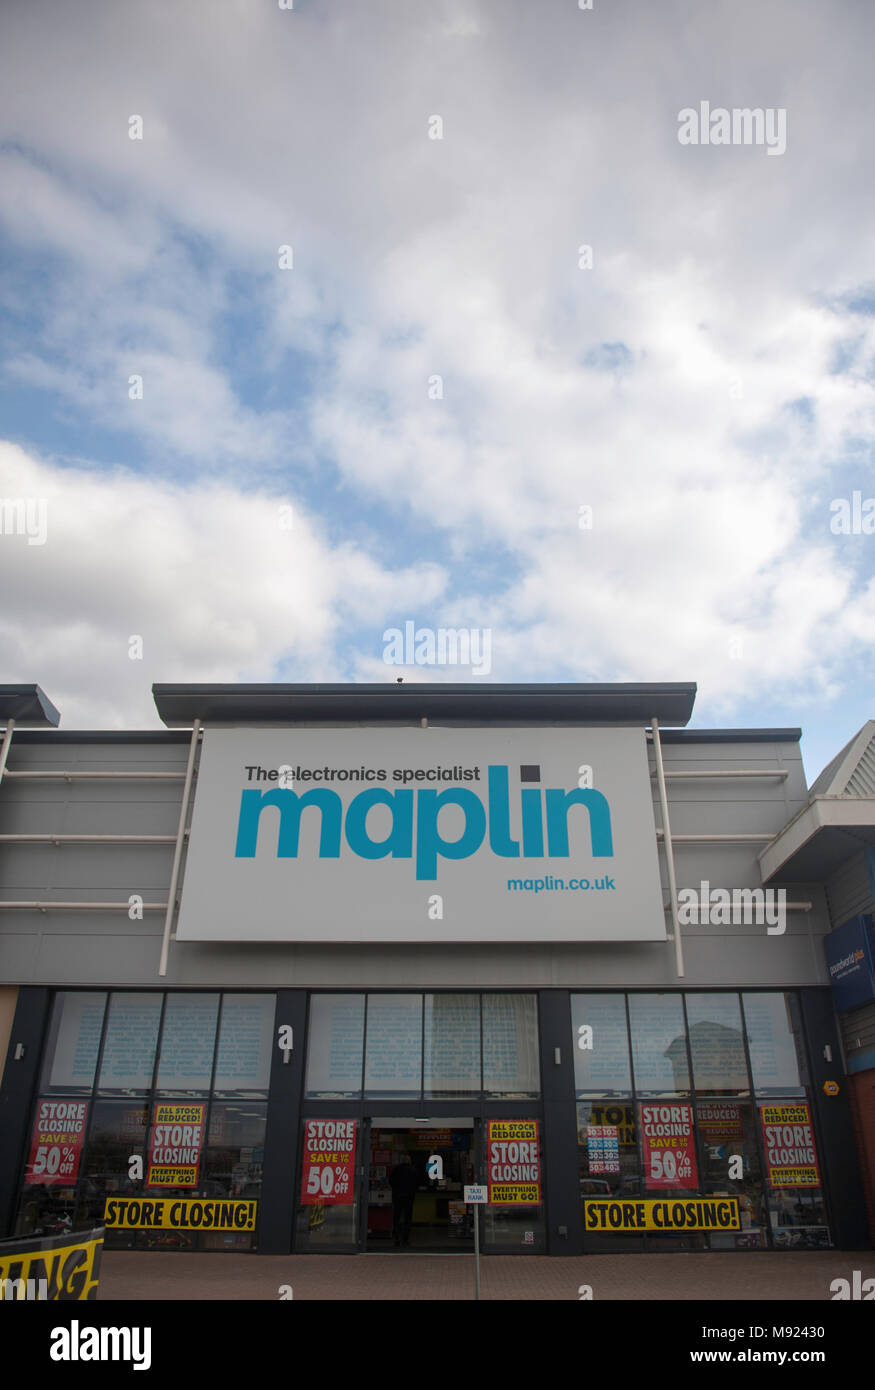 Leicester, UK. 21st March 2018. Maplin store closures and job losses. © Flab LSTR / Alamy Live News - Stock Image